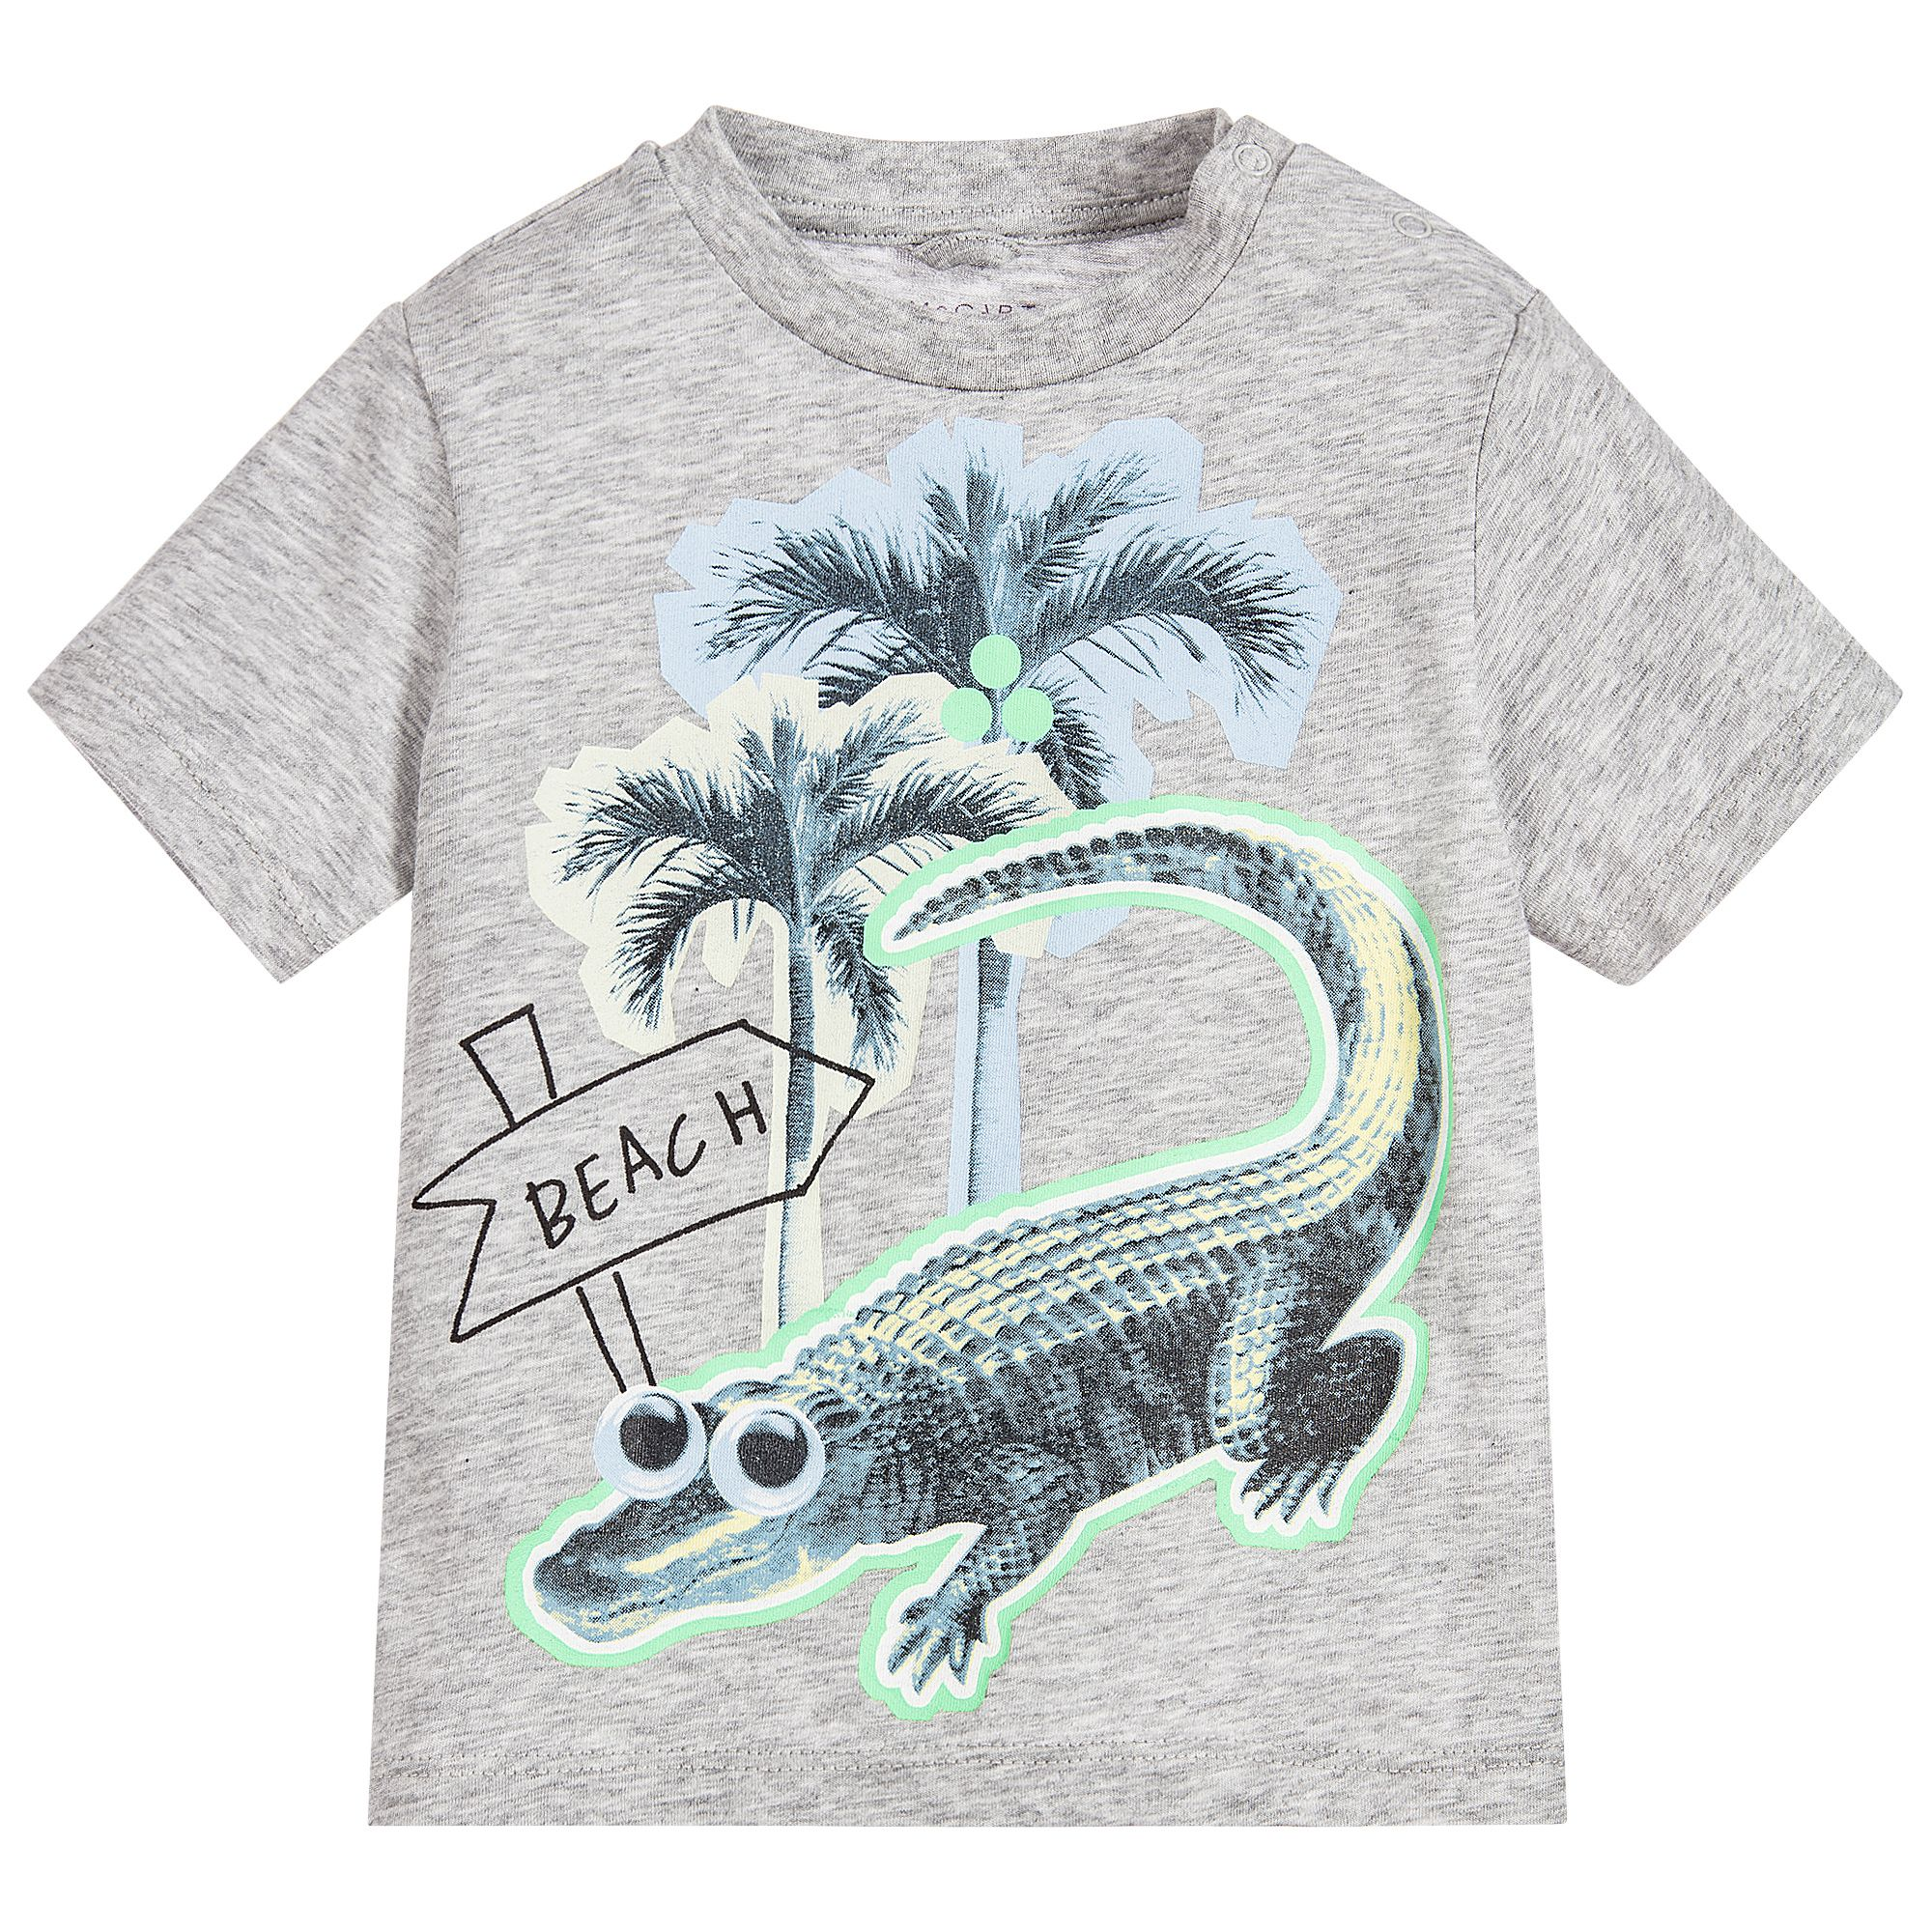 Baby boys grey 'Chuckle' t-shirt from Stella McCartney Kids. Made in soft organic cotton jersey, with a fun crocodile print and popper fastenings on one shoulder for easy dressing.